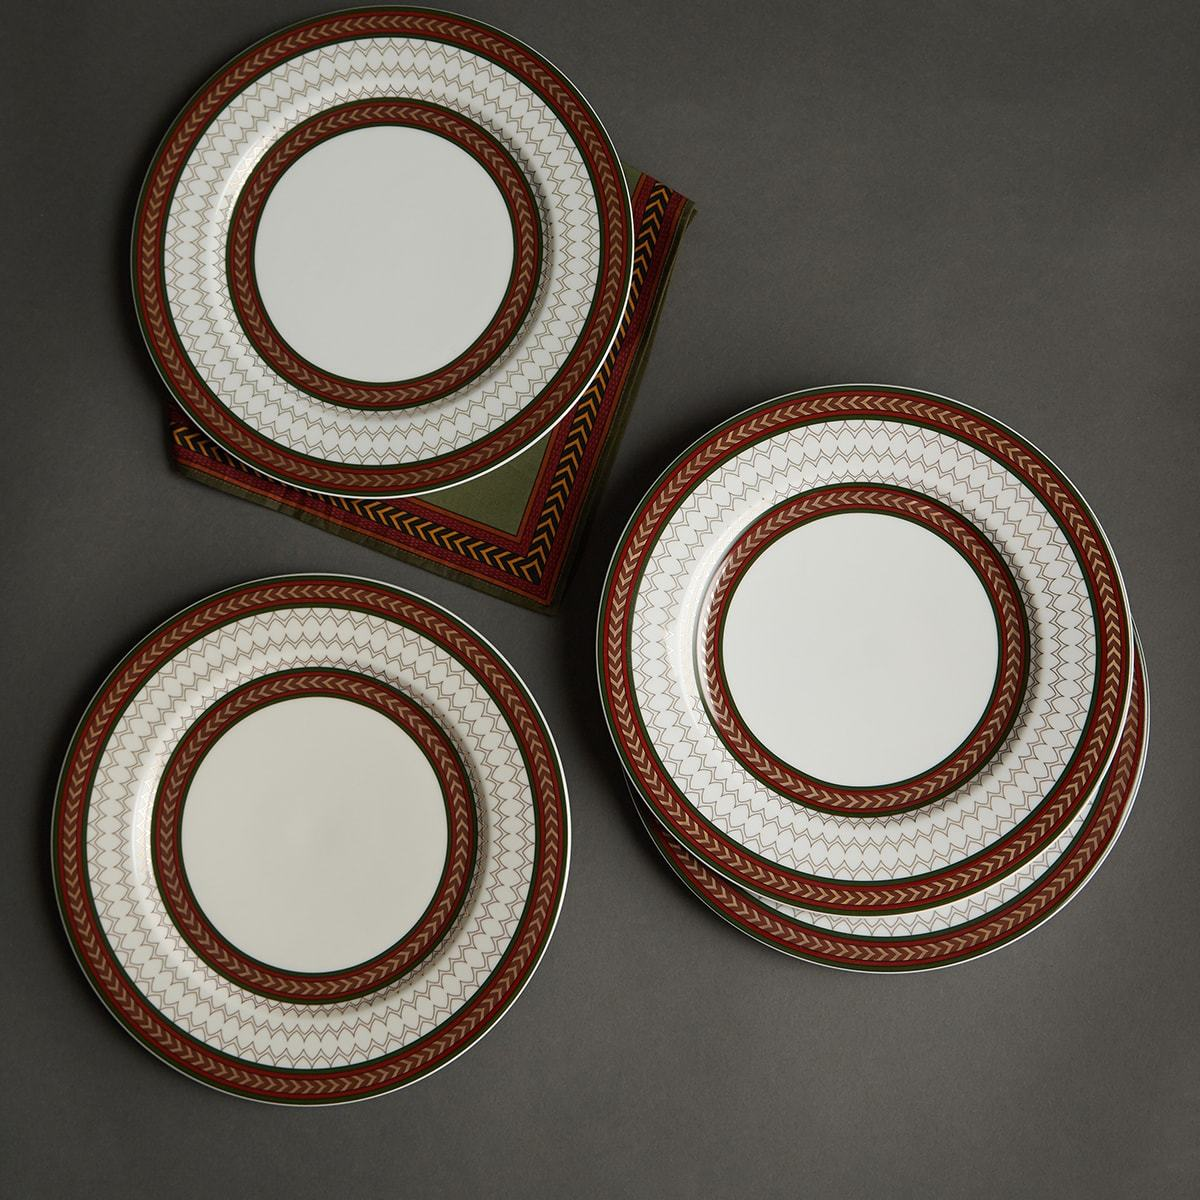 Off White Baagh Dinner Plate (Set of 4) by Ritu Kumar Home - Home Artisan